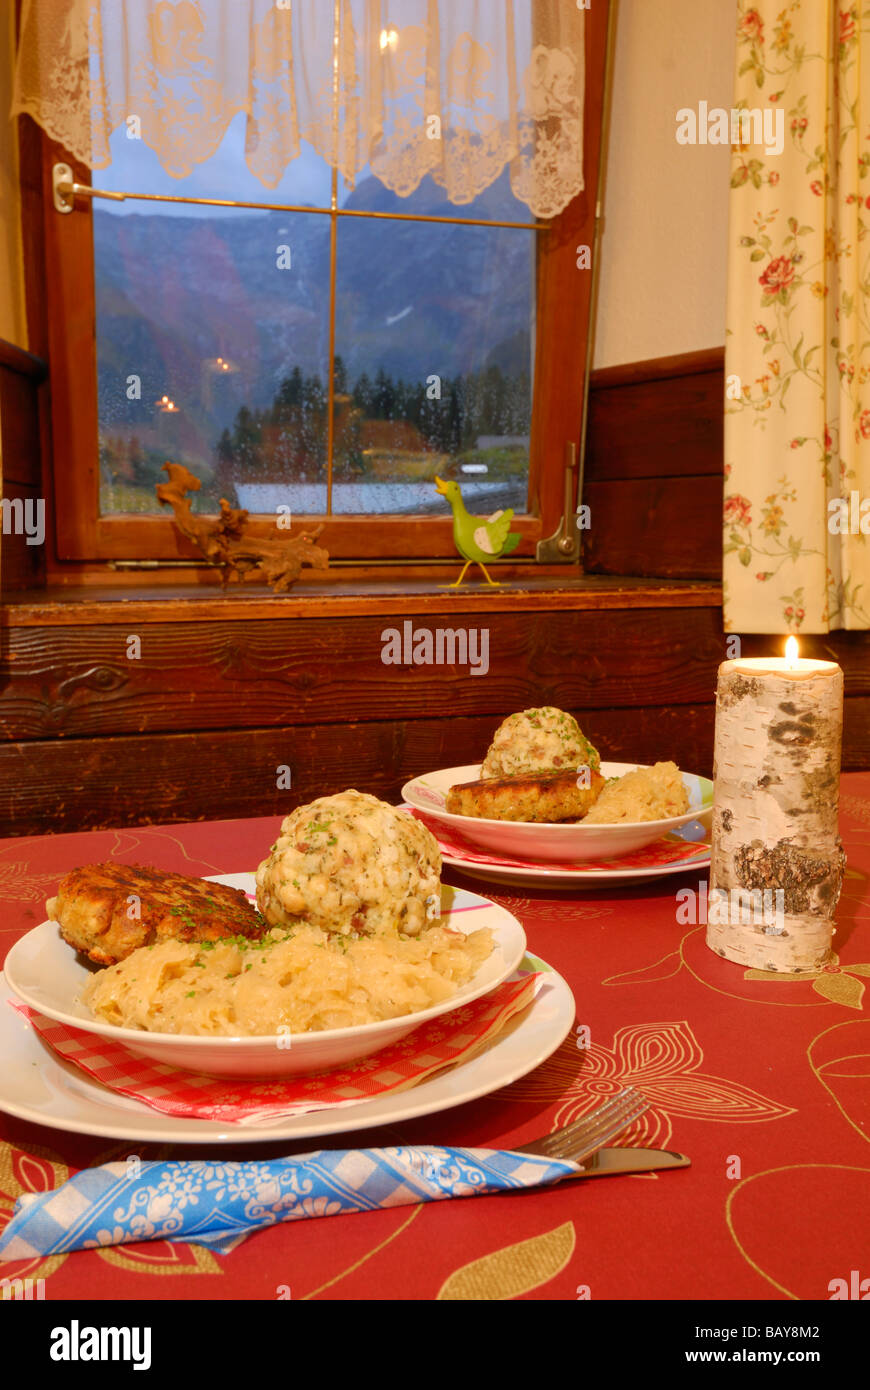 laid table with two portions of Tyrolean Kaspressknoedel and Speckknoedel with sauerkraut, Tyrol, Austria - Stock Image